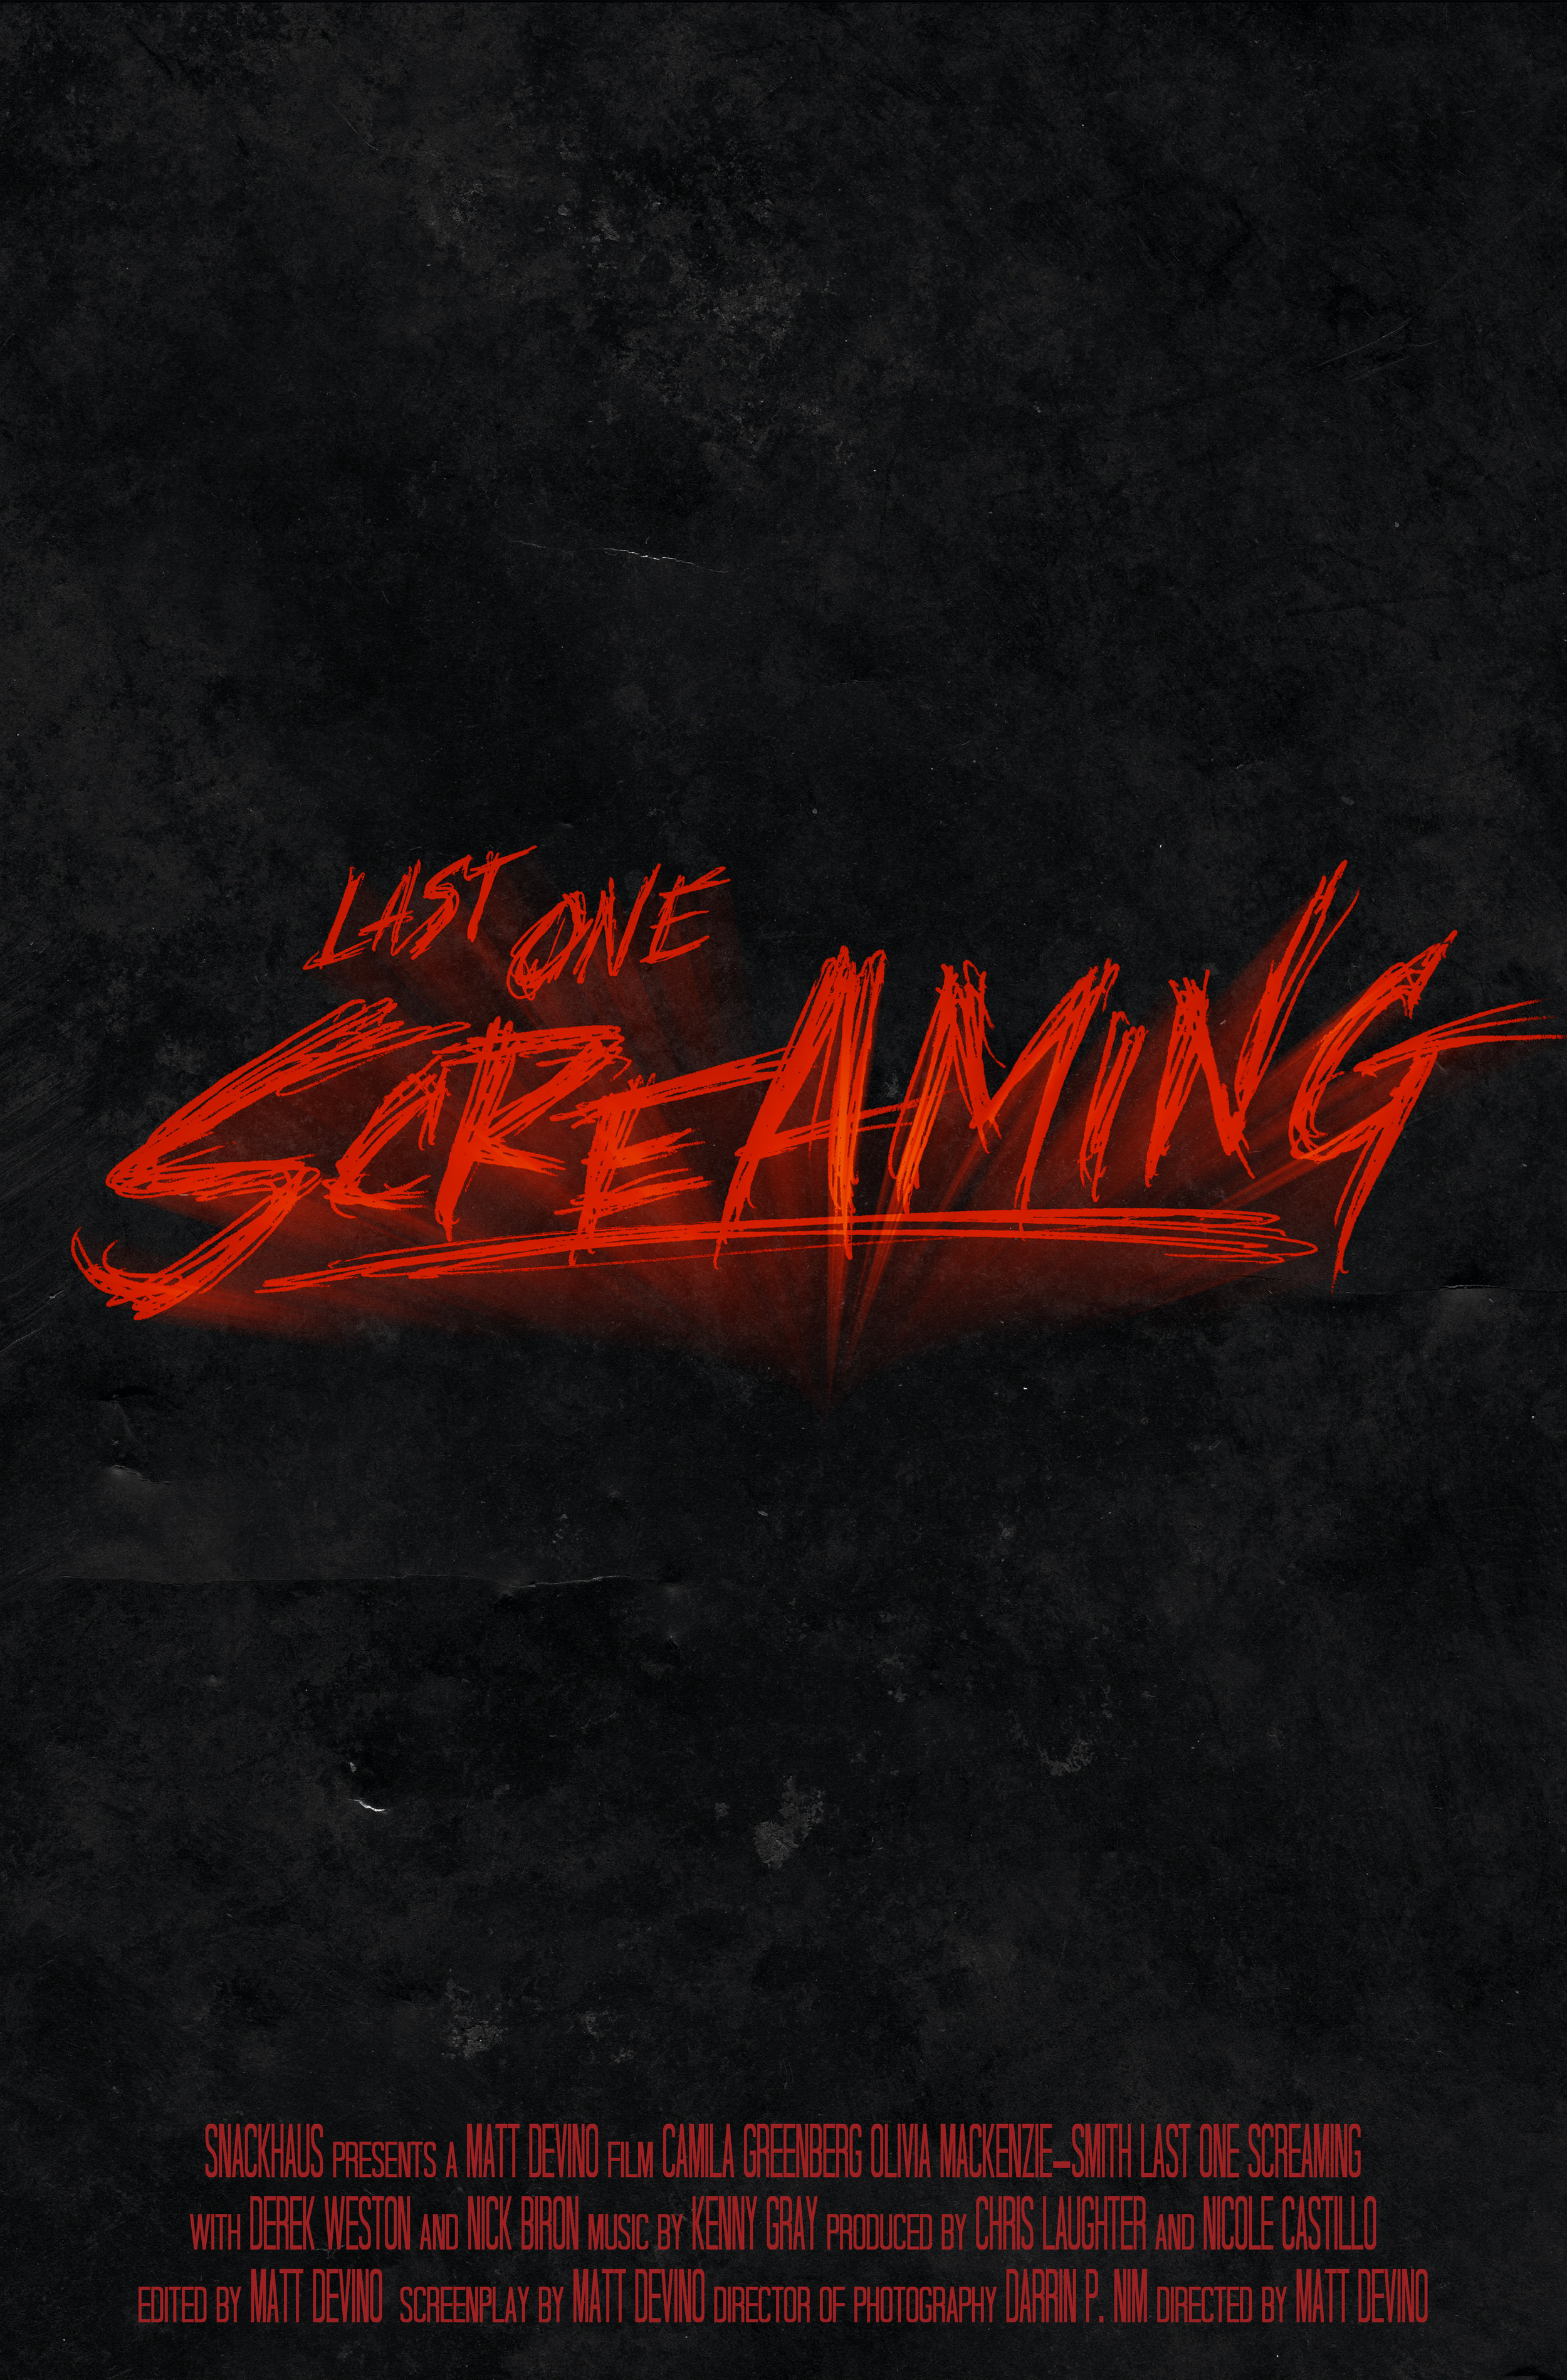 LastOneScreaming_Poster2_medium.jpg